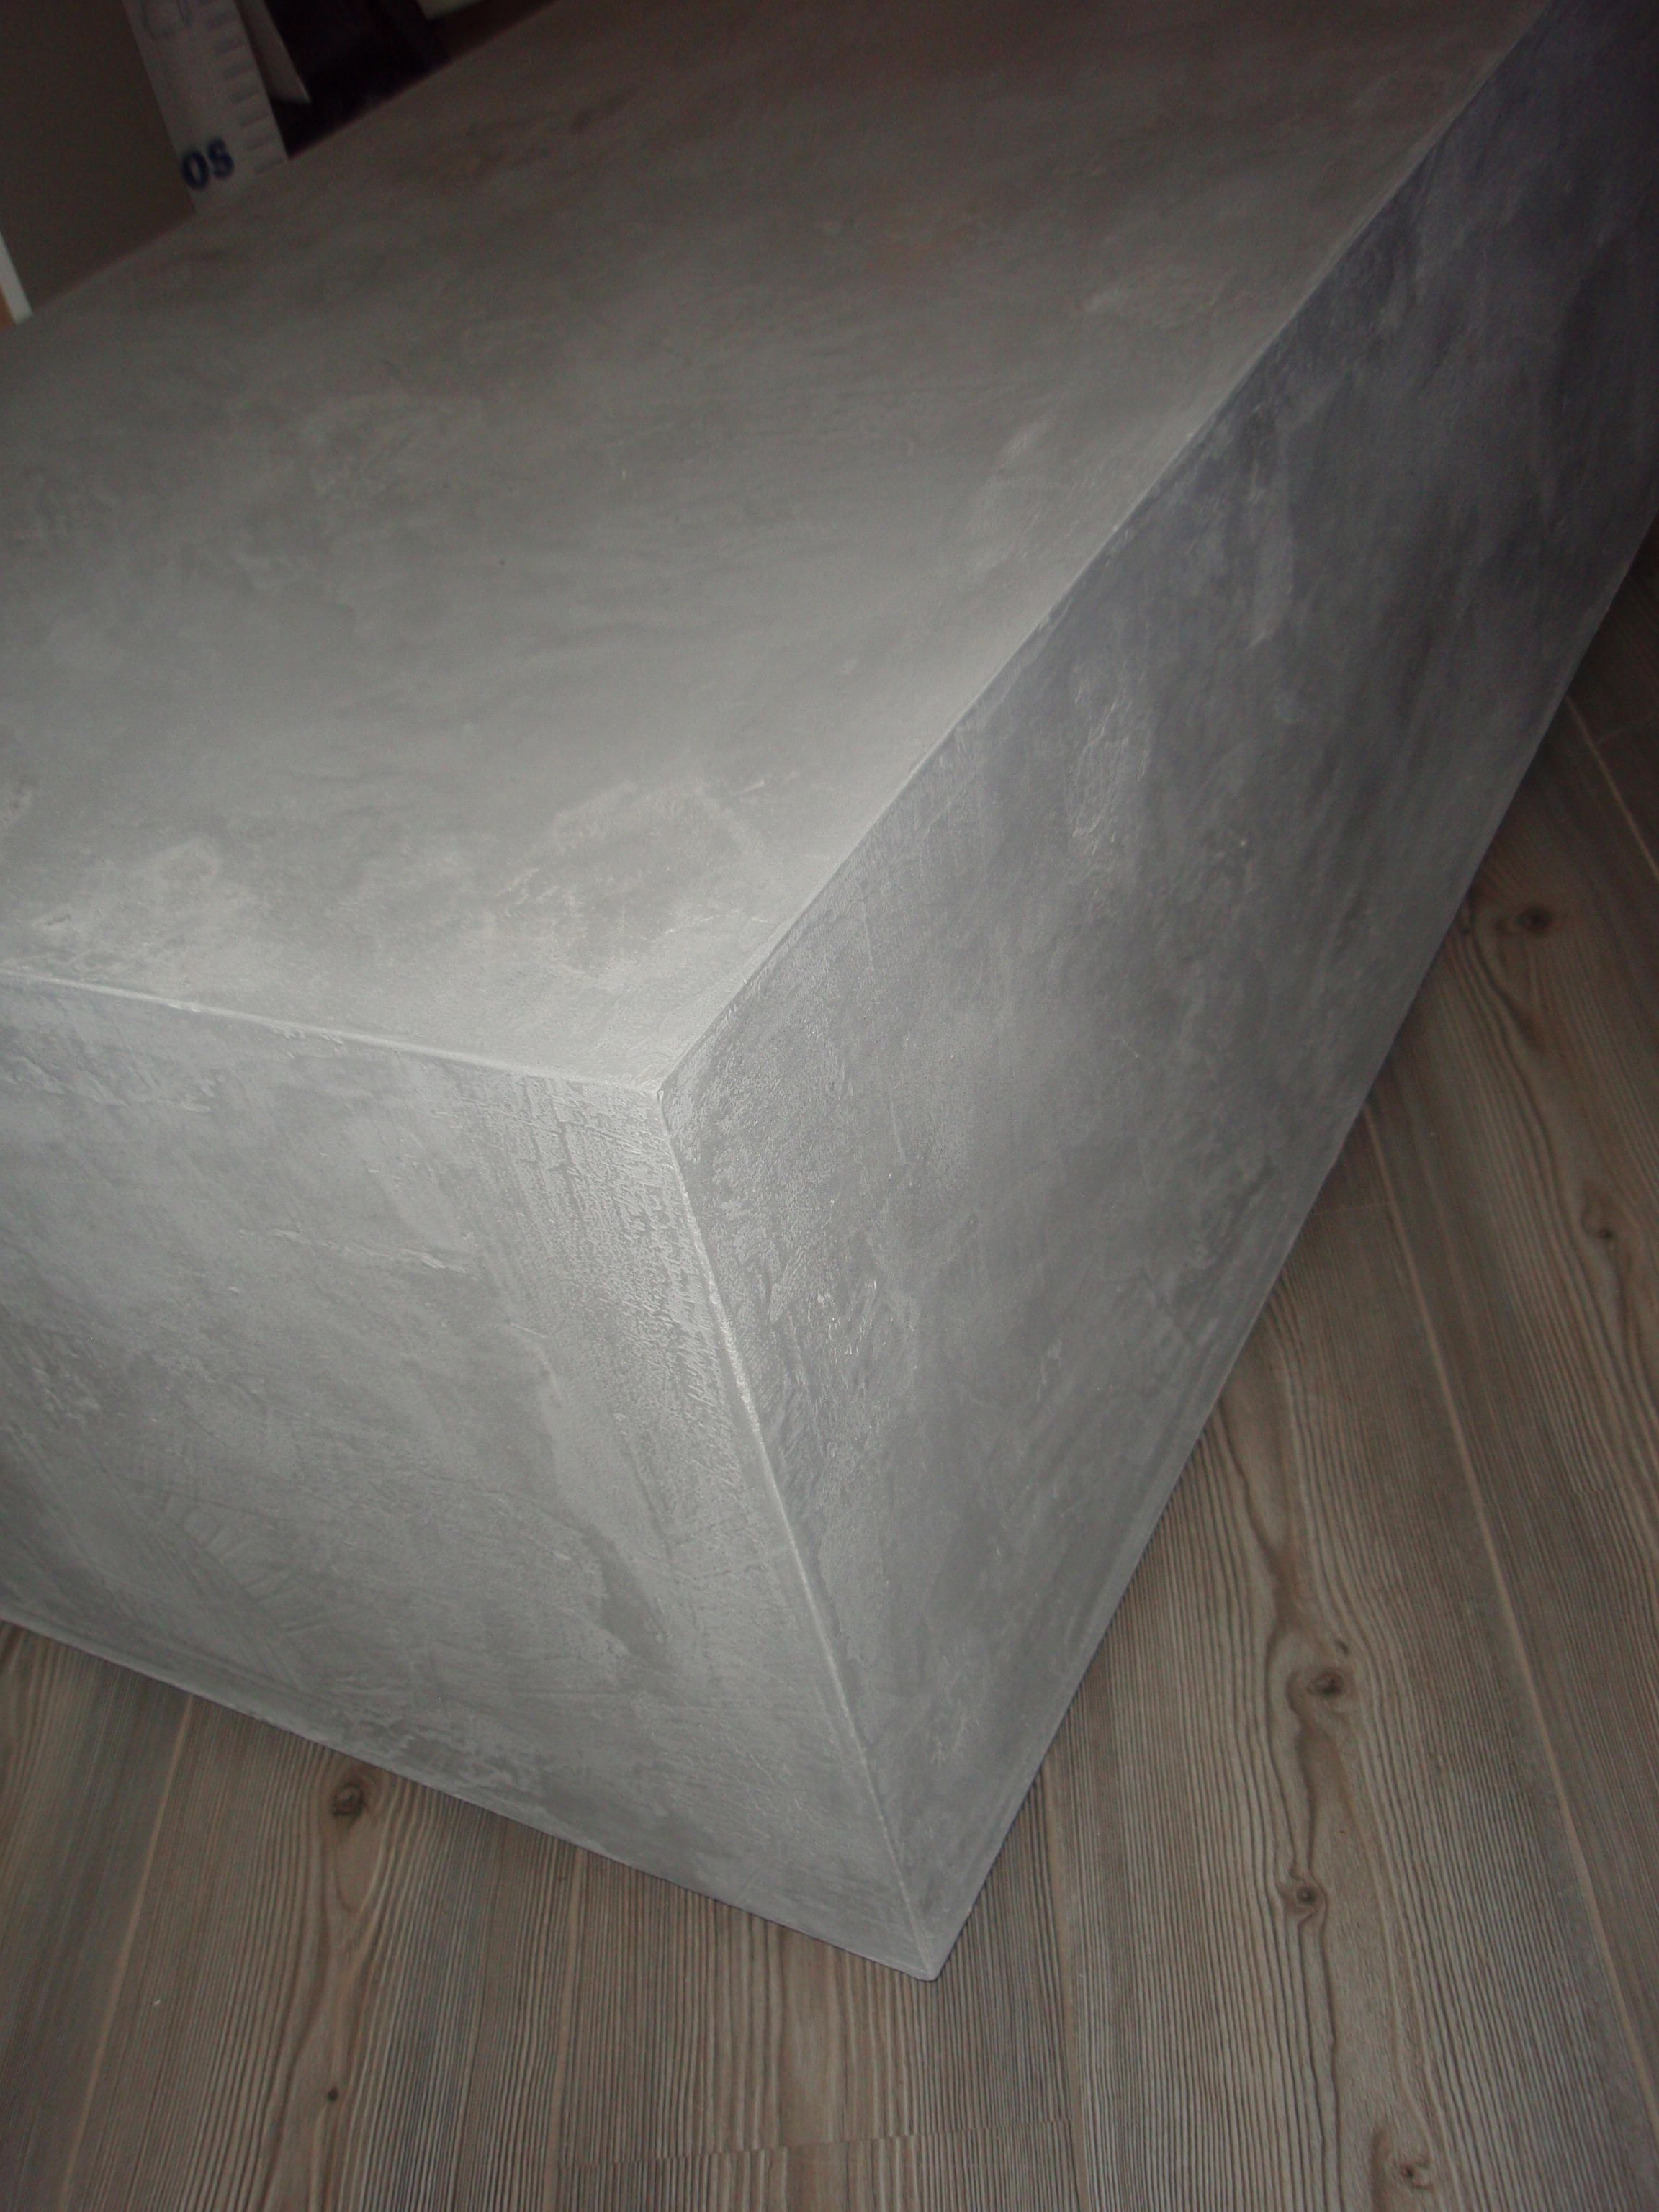 Beton cire over mdf eigen werk pinterest diy and crafts - Beton wax badkamer ...